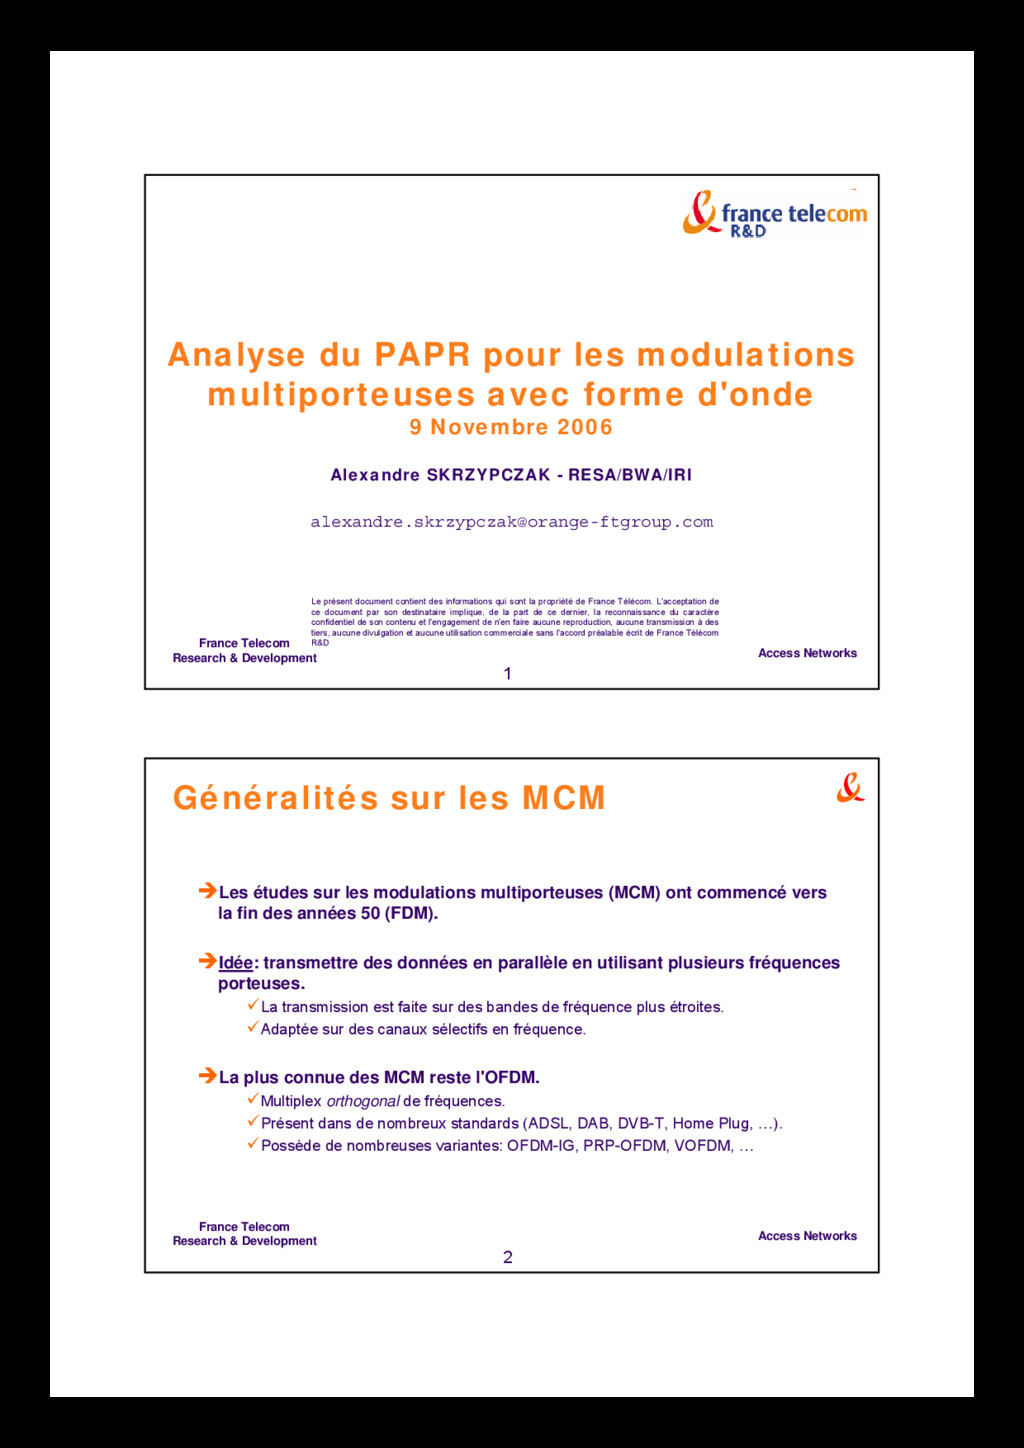 Access Networks France Telecom Research & Devel...